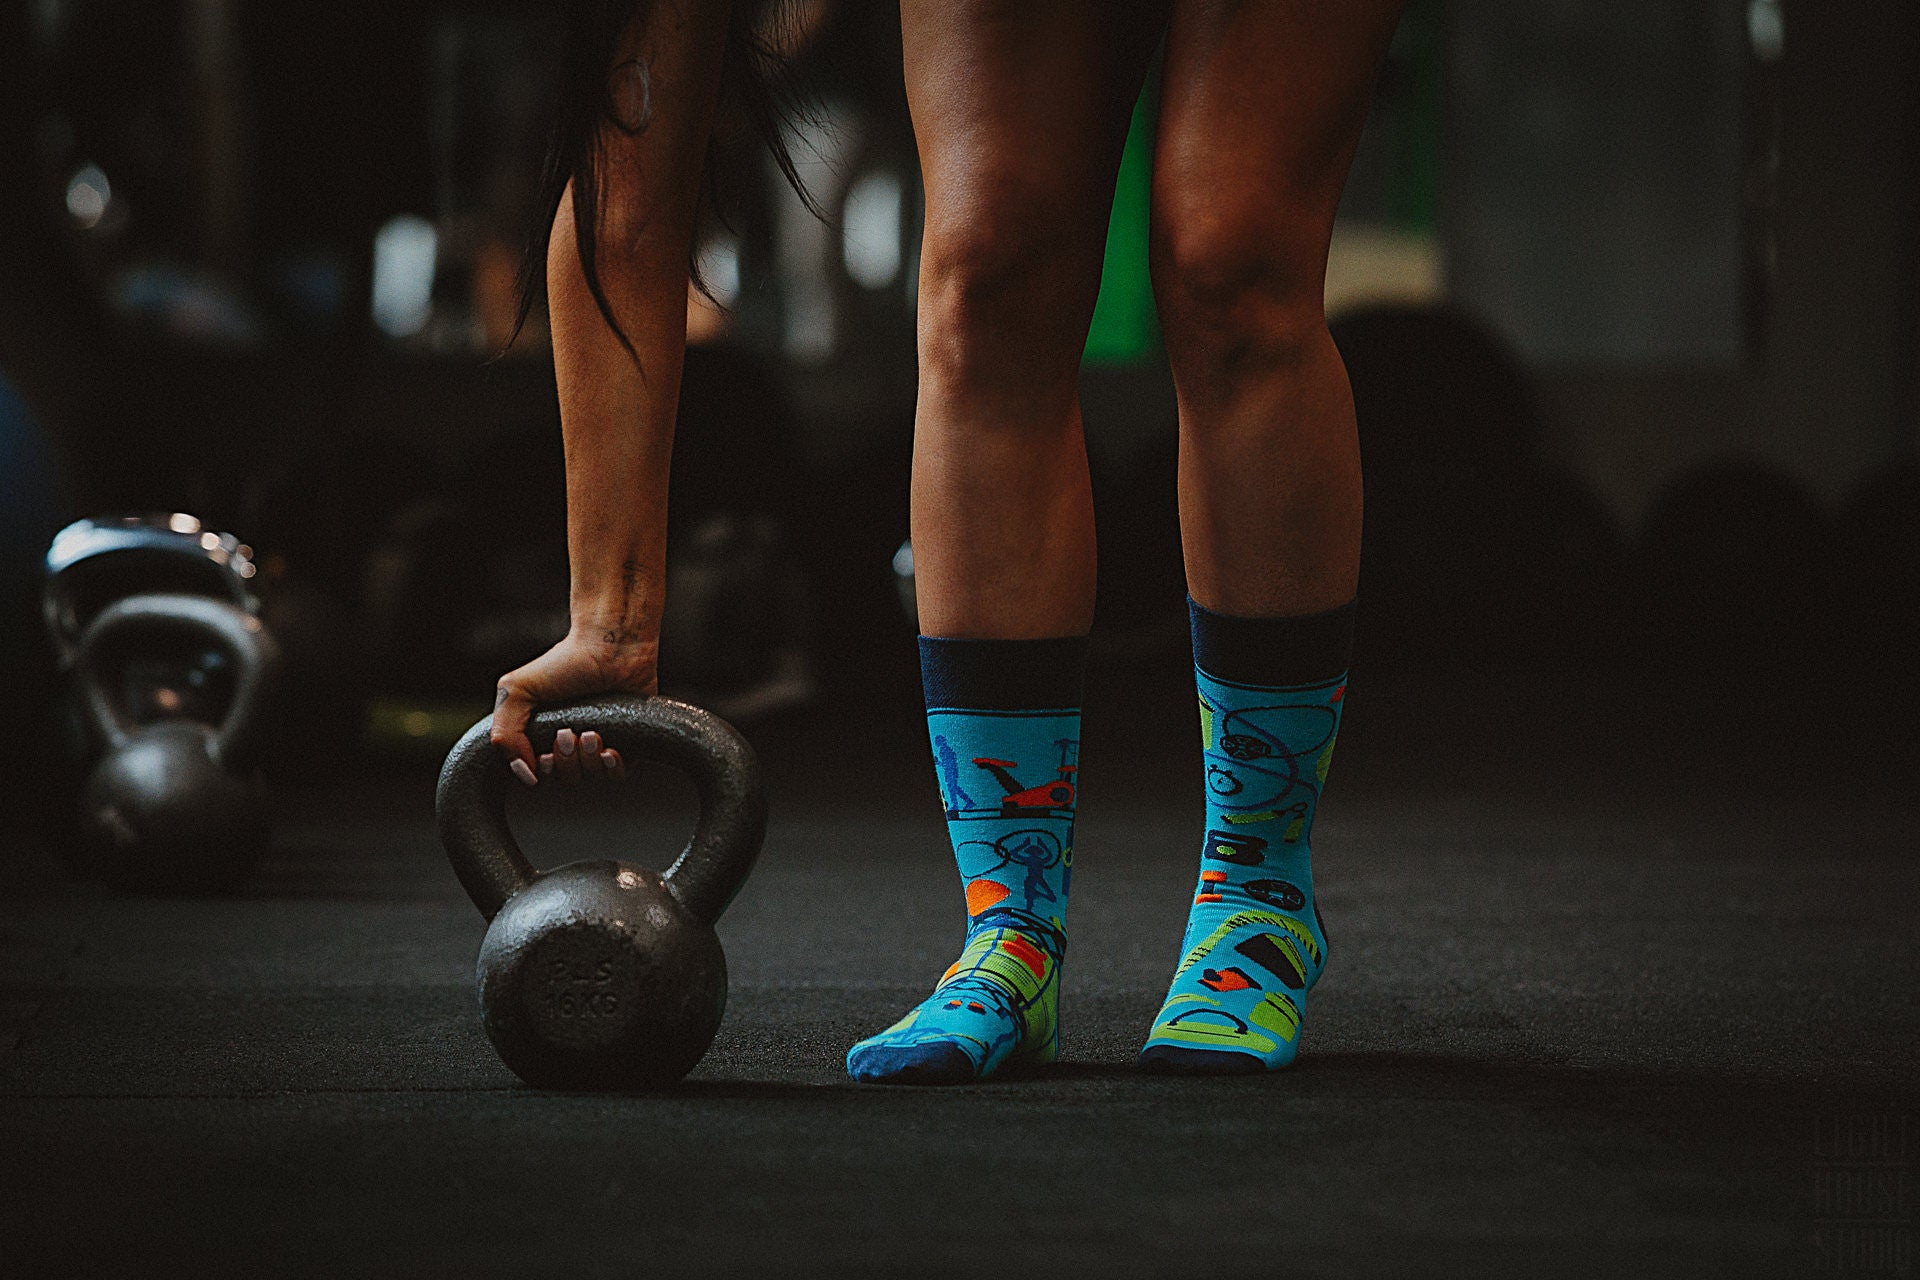 Gym | Crossfit | Colourful Mismatched Funny Socks | King Stone | SpoxSox | Spox Sox